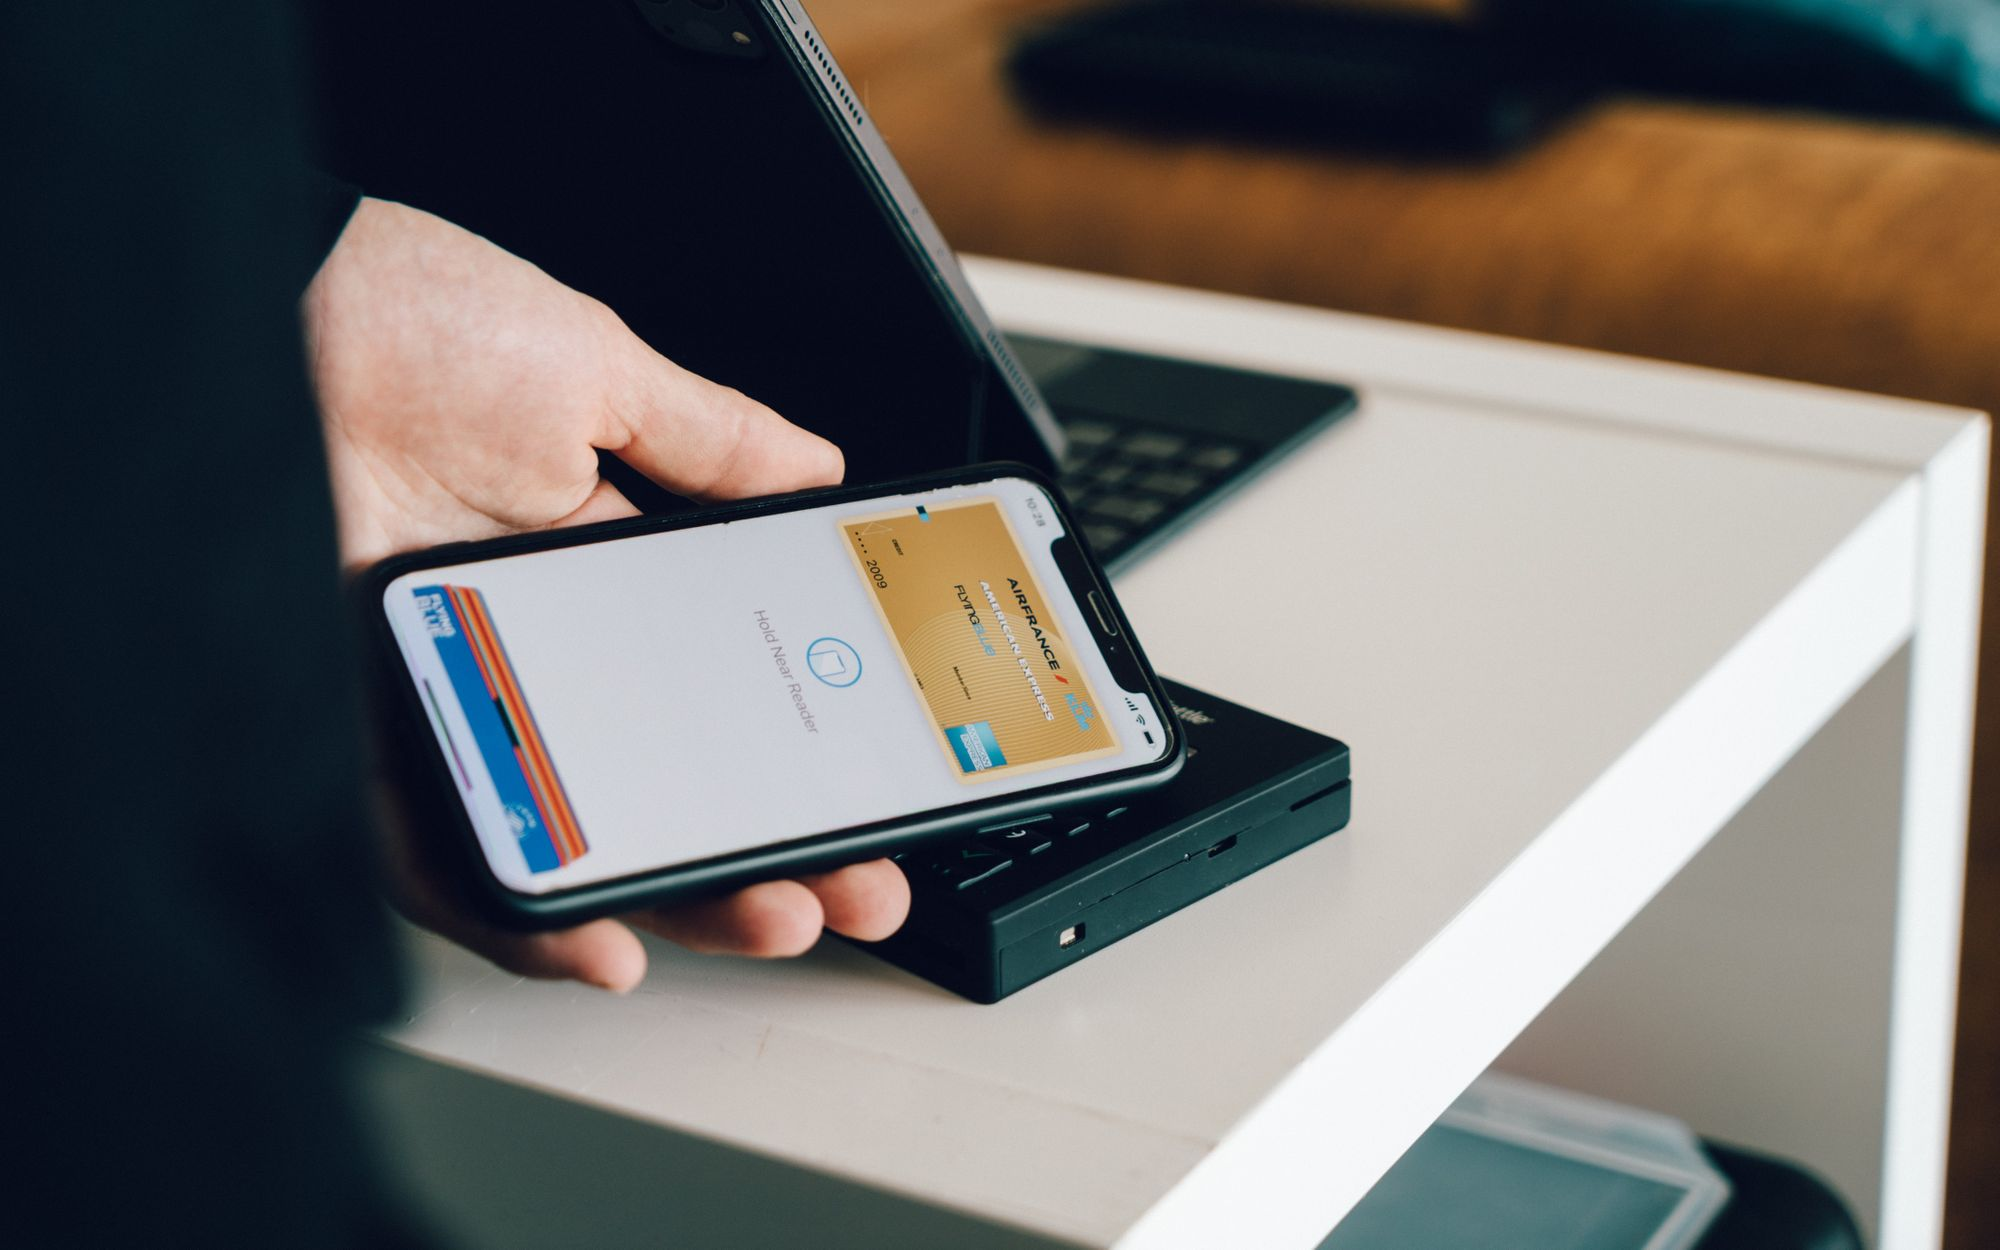 A person using the Apple Pay mobile Wallet to purchase something at a shop.